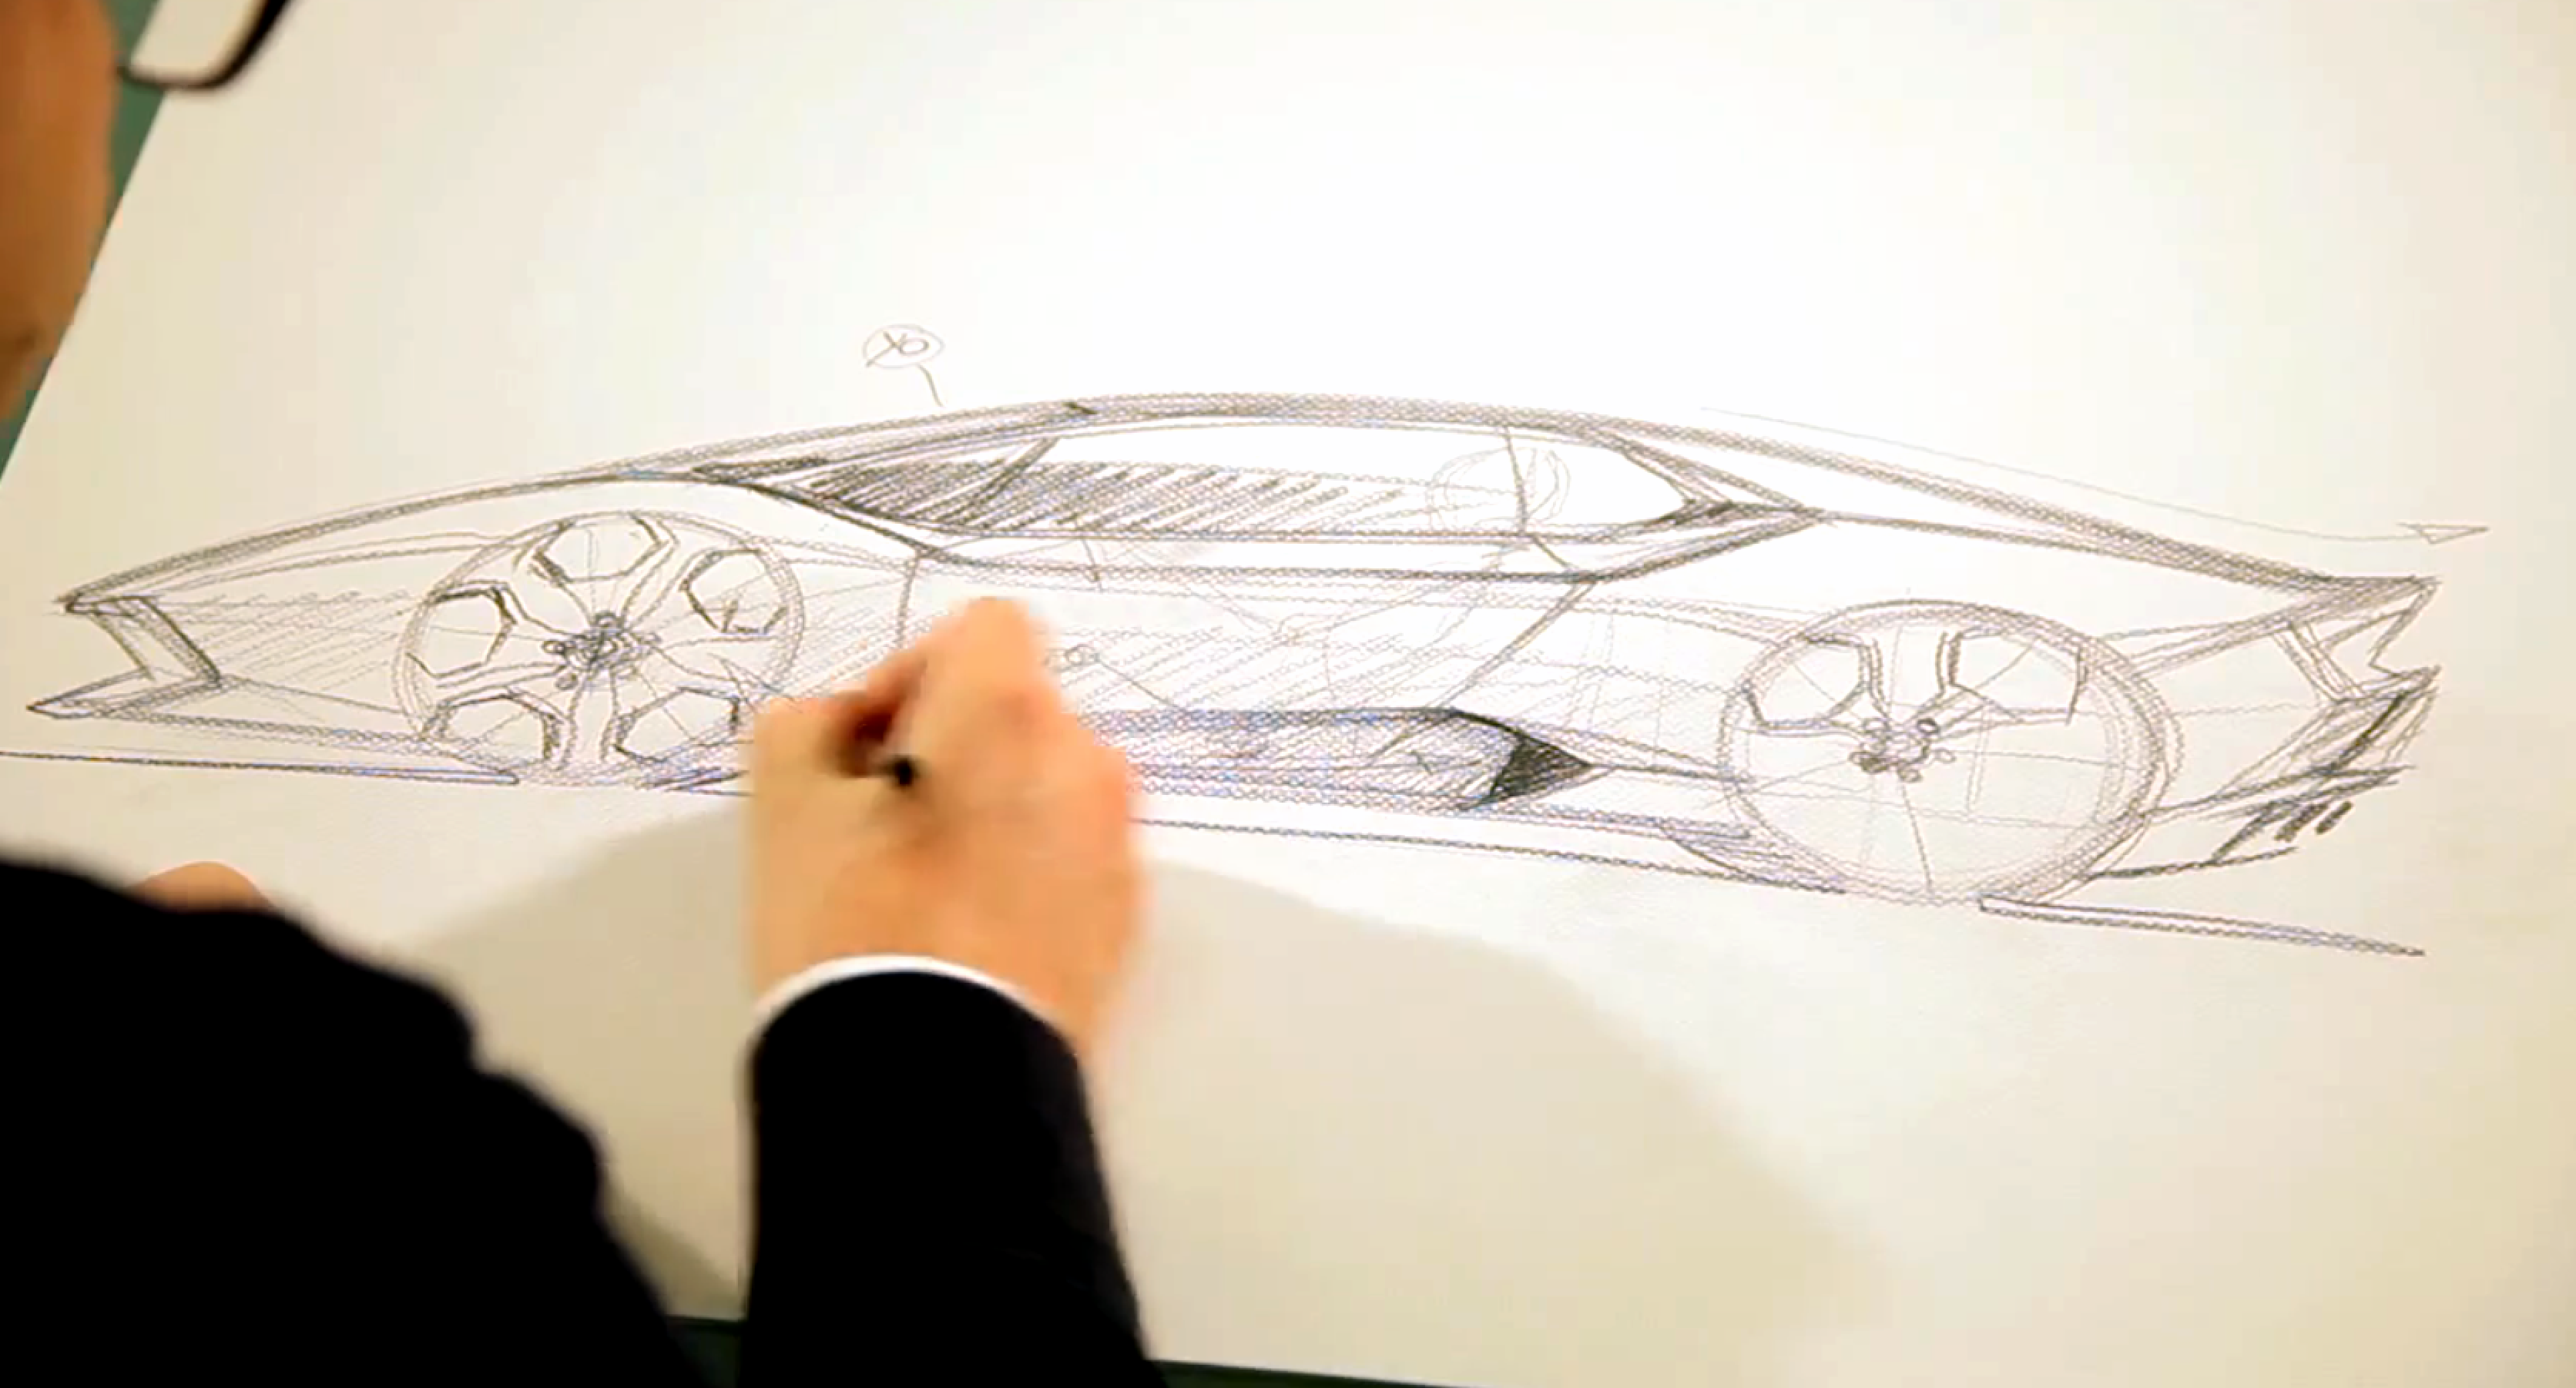 Huracan ontwerp video